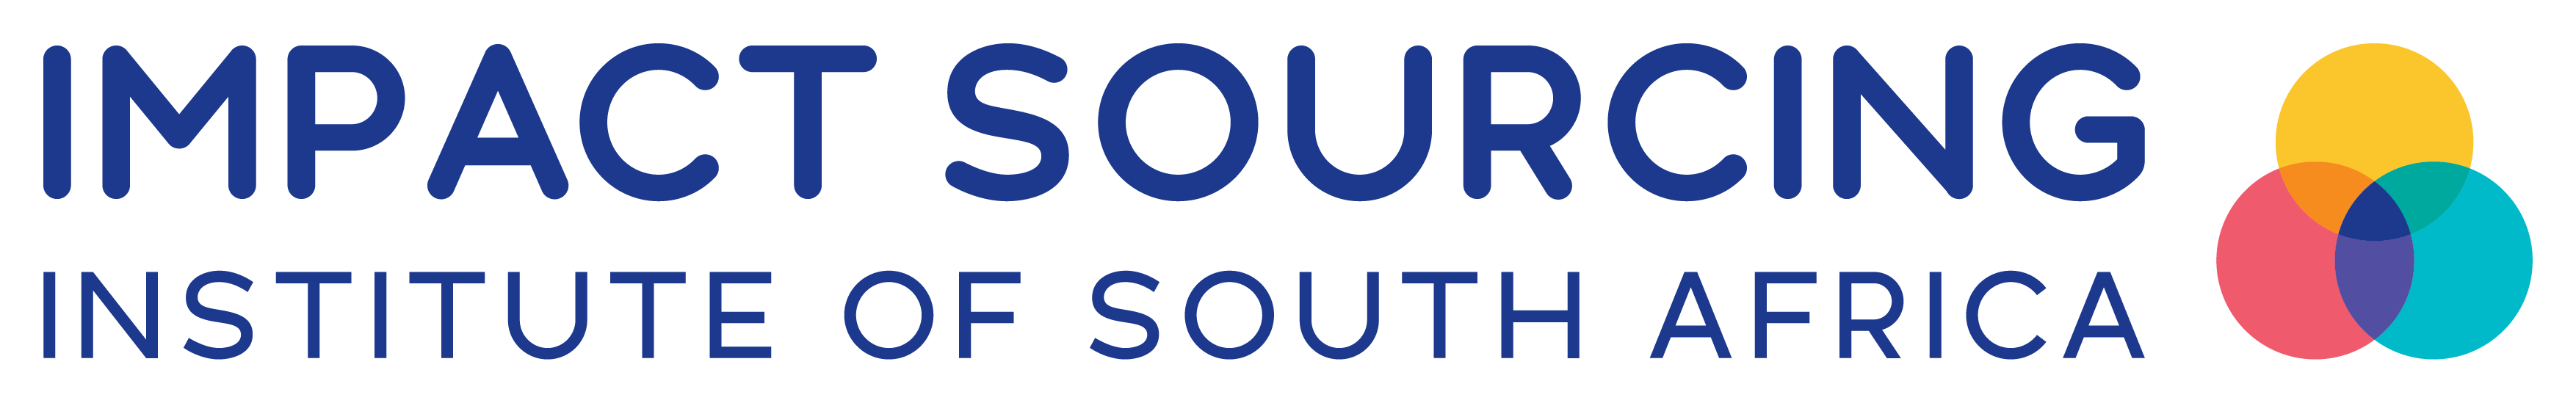 Impact_Sourcing_Institute_of_South_Africa_Logo_V1-01